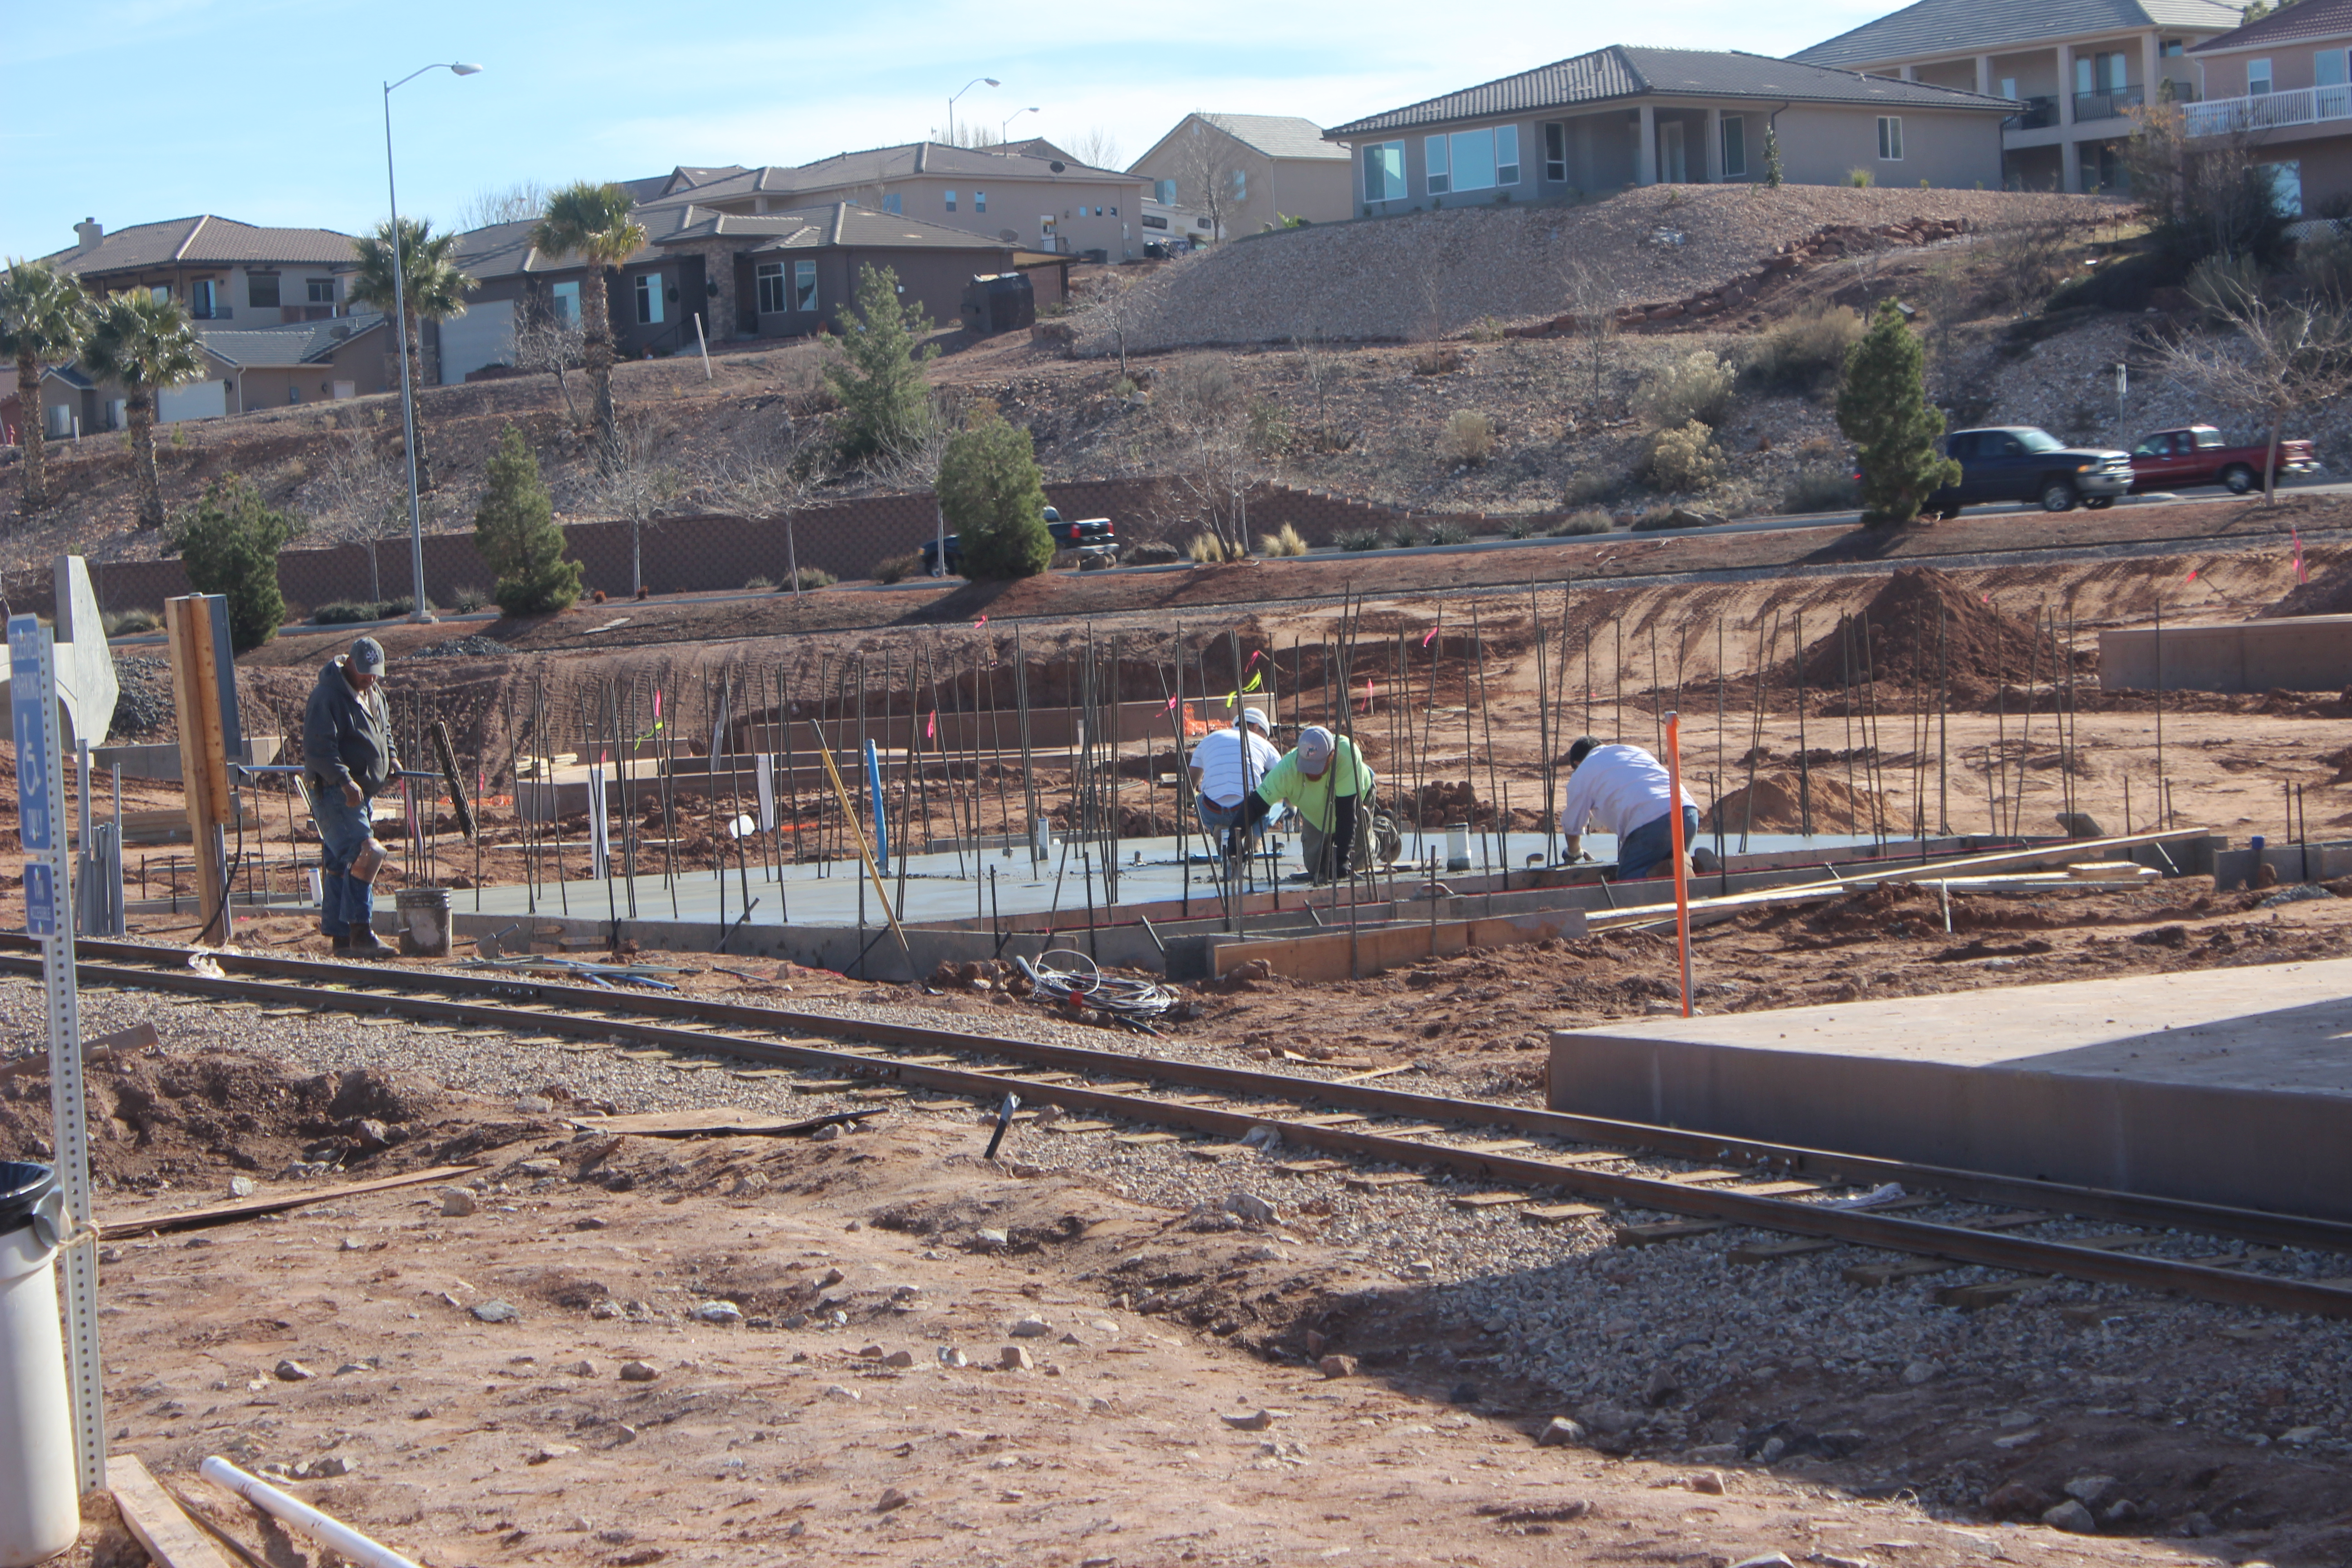 Workers laying cement during construction of the St. George All Abilities Park and Playground, St. George, Utah, Feb. 5, 2016 | Photo by Don Gilman, St. George News